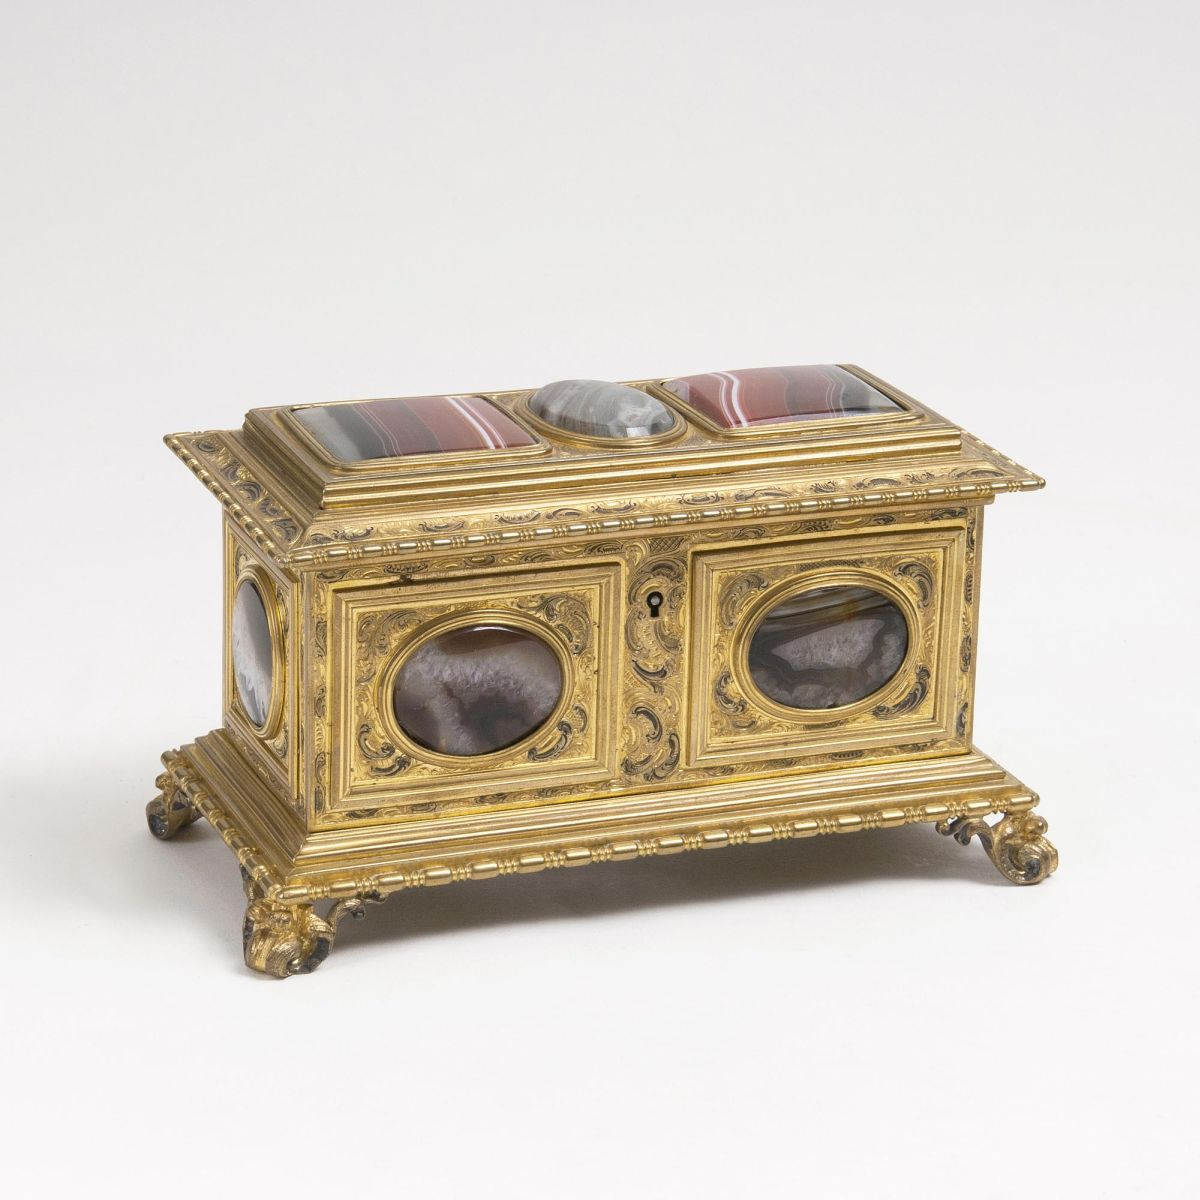 A Napoléon III Coffer-Box with Agate